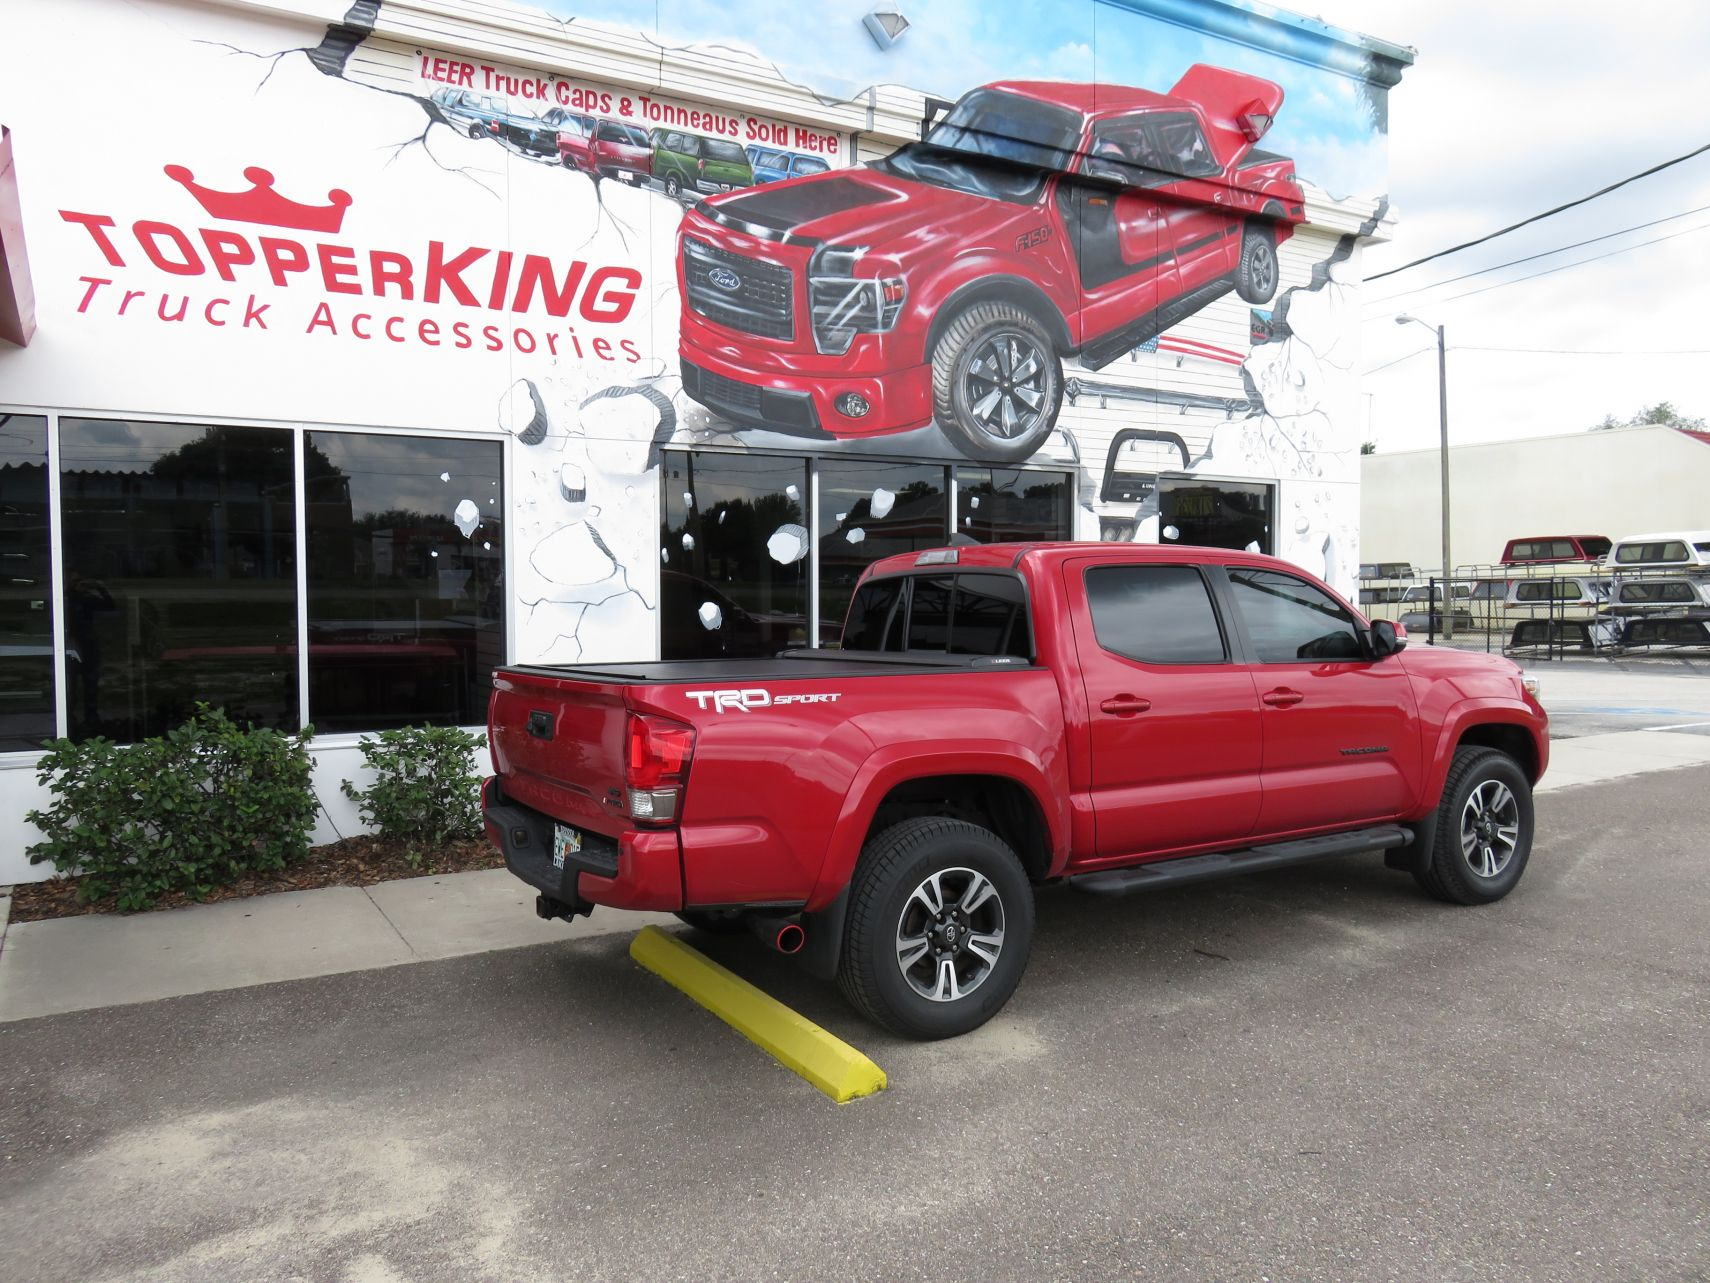 2017 Toyota Tacoma with LEER Ricochet, Black Out Nerf Bars, Tint, Hitch by TopperKING in Brandon, FL 813-689-2449 or Clearwater, FL 727-530-9066. Call Now!